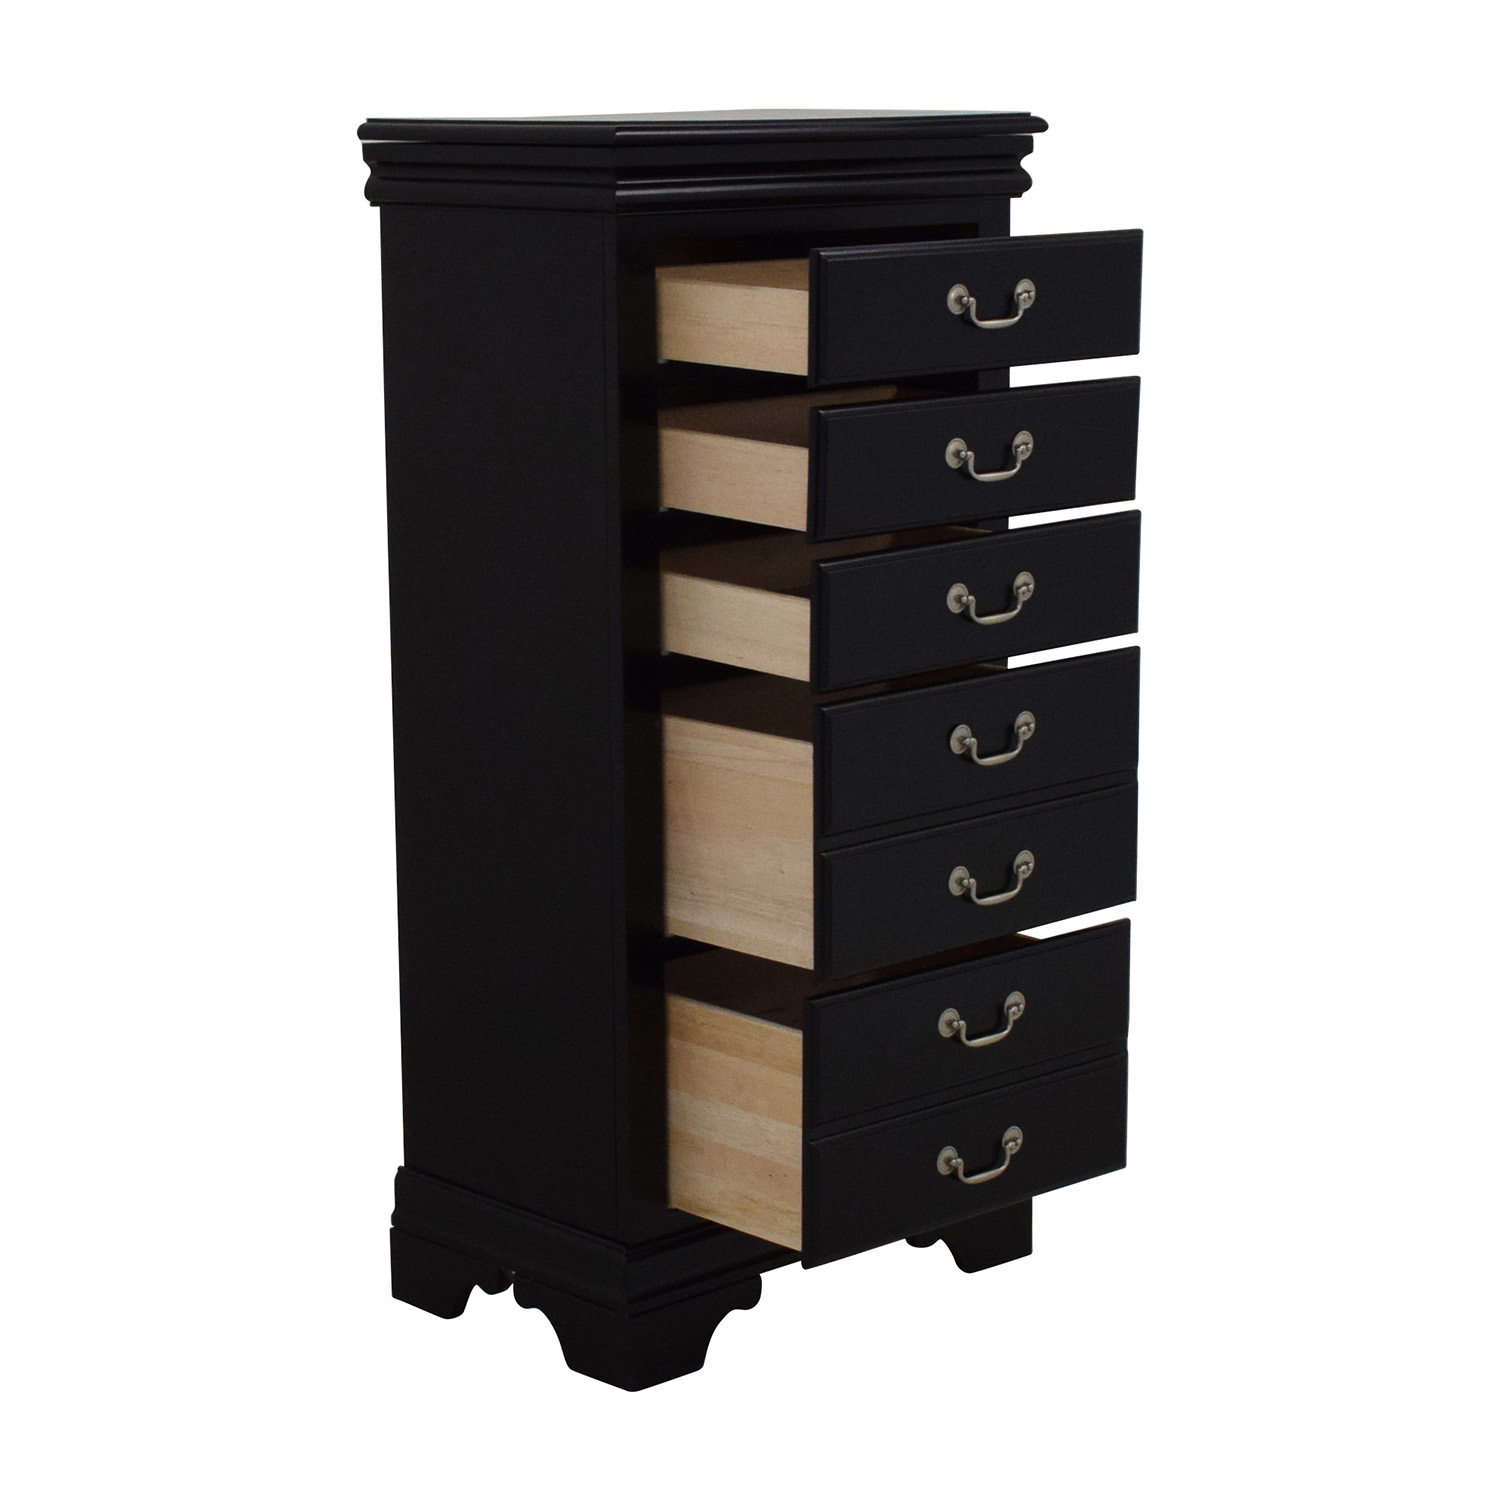 48 Off Bob 39 S Furniture Bob 39 S Furniture Louie Tall 7 Drawer Dresser Storage